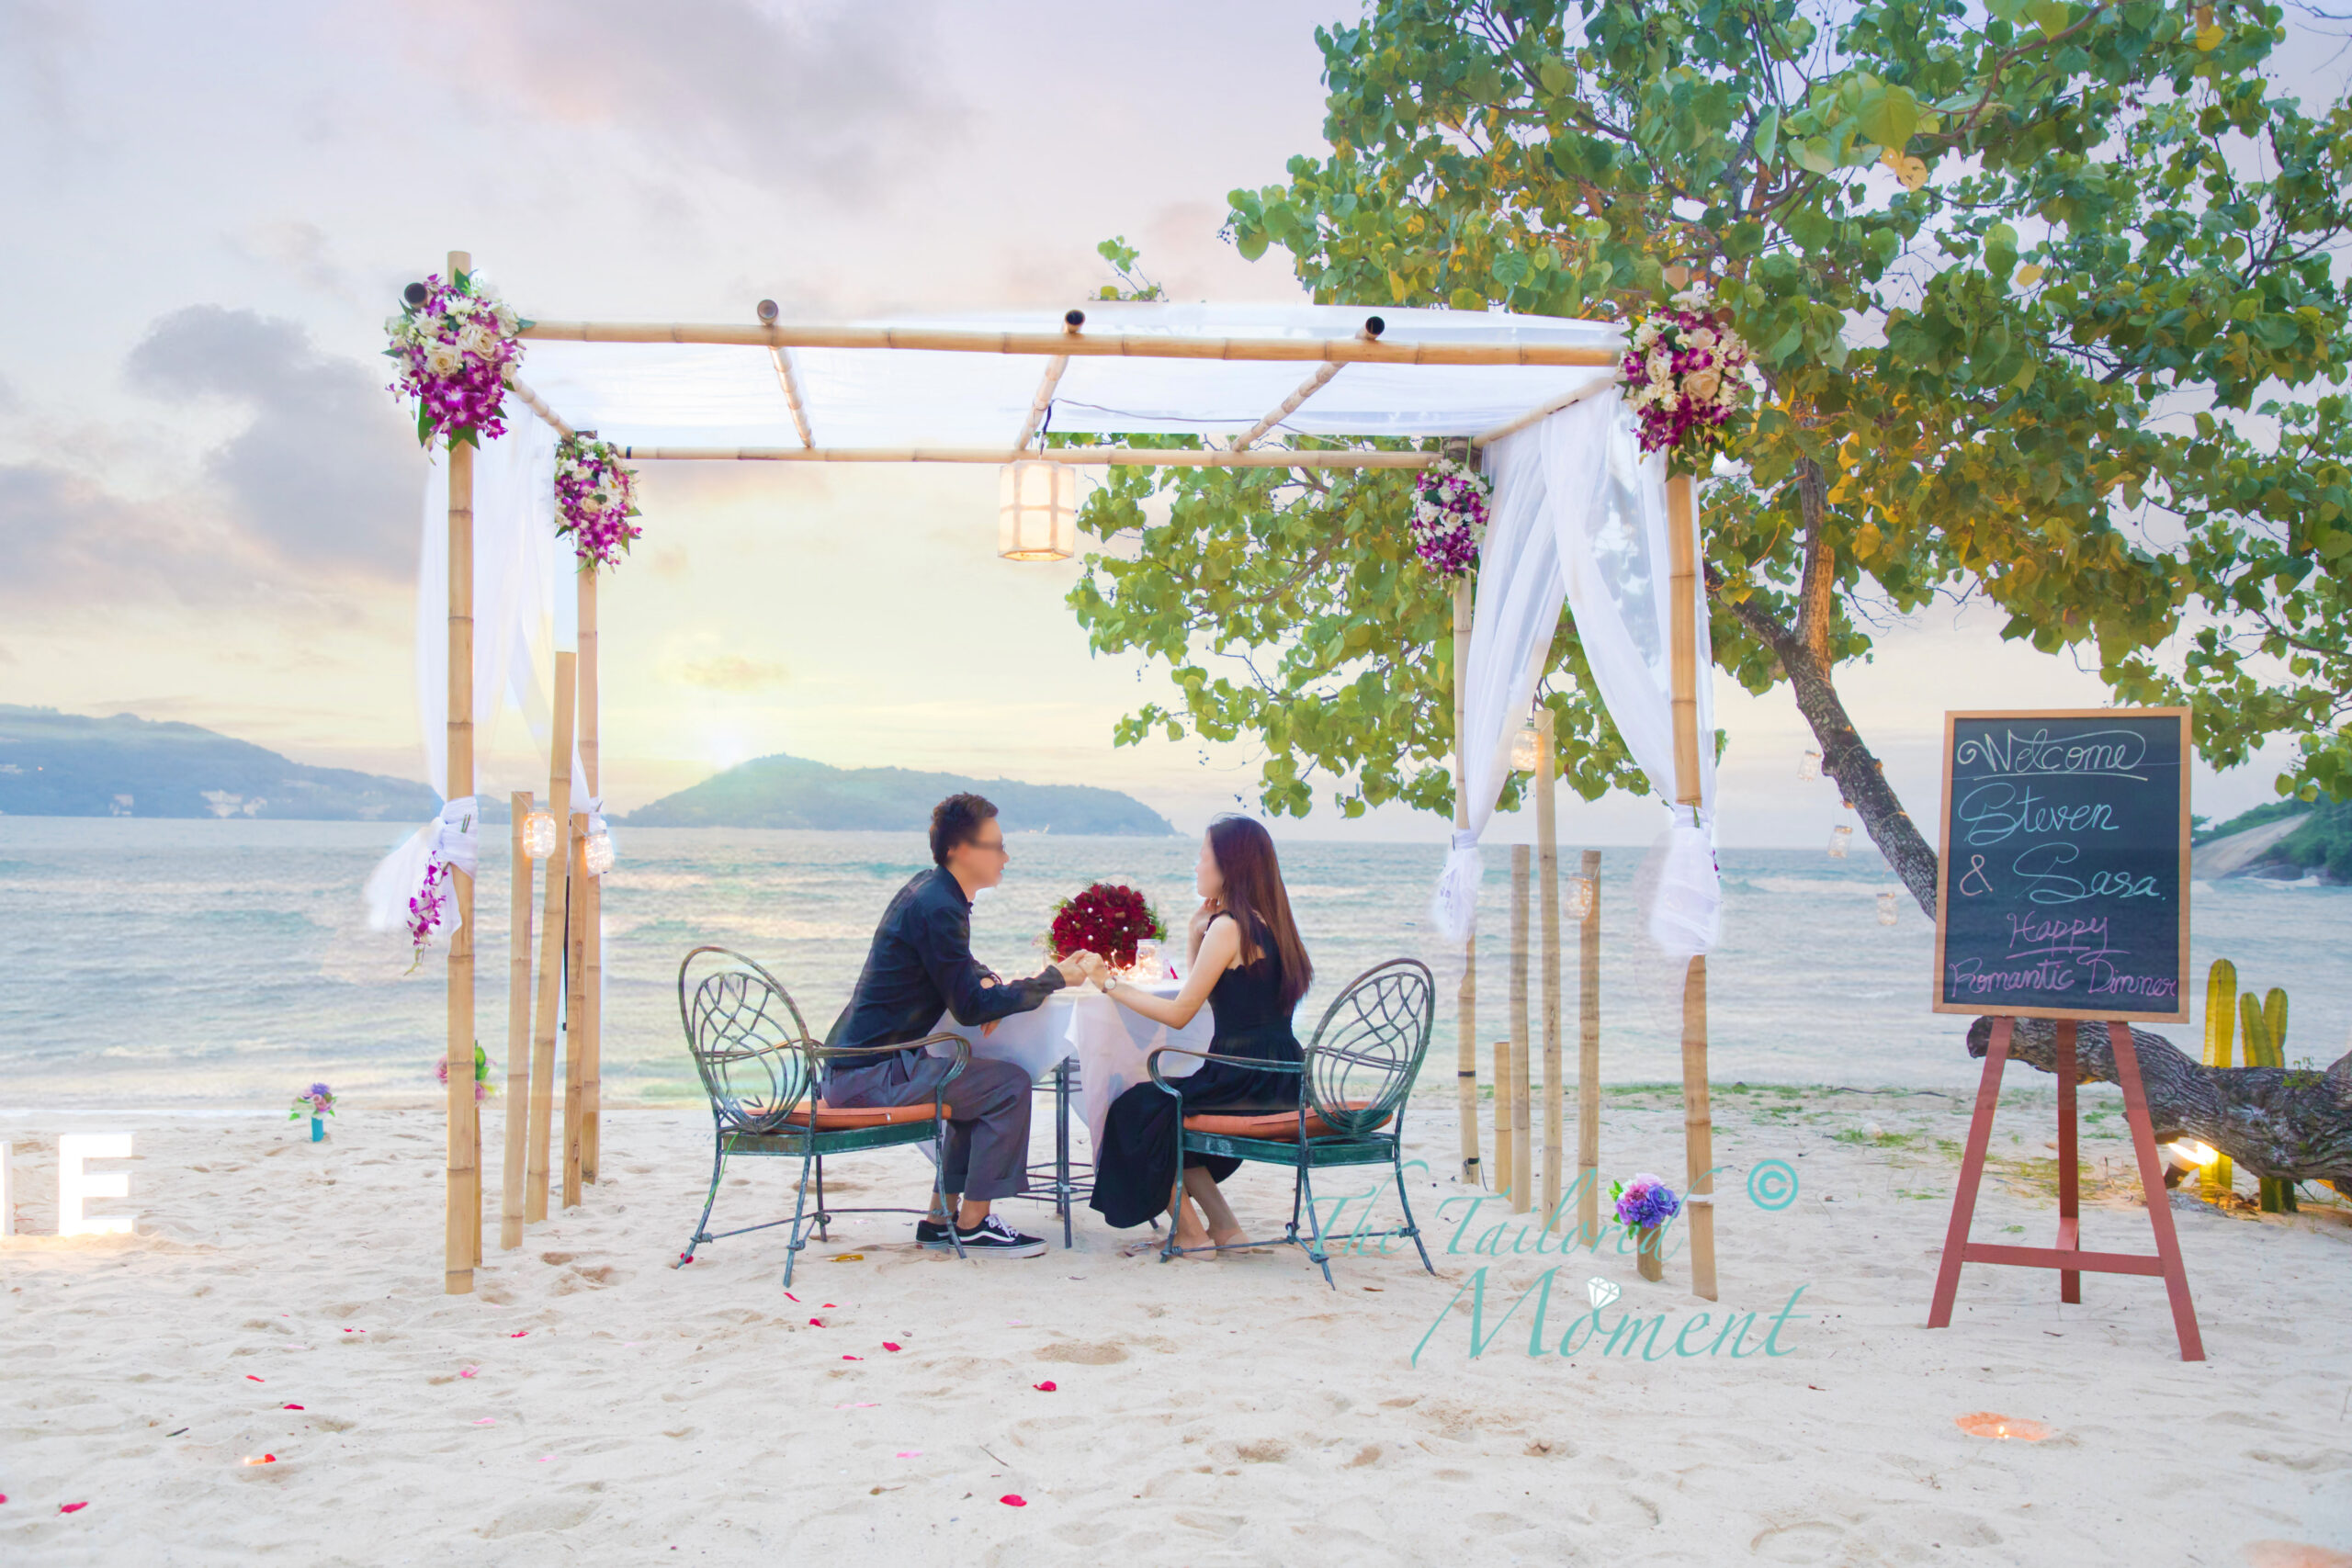 香港沙灘求婚策劃 Hong Kong Beach Proposal Planning